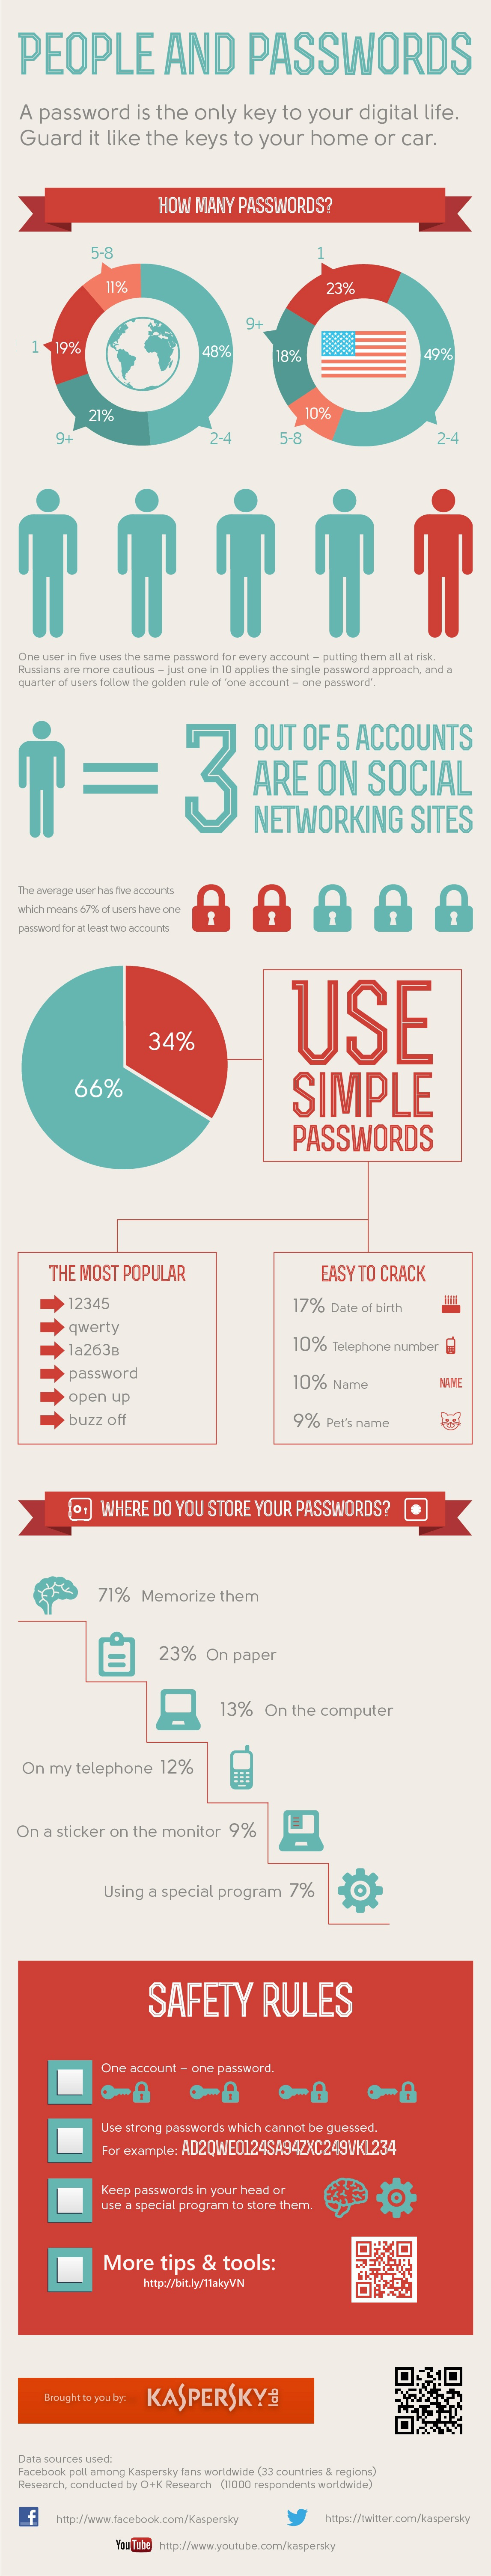 IG - people and passwords